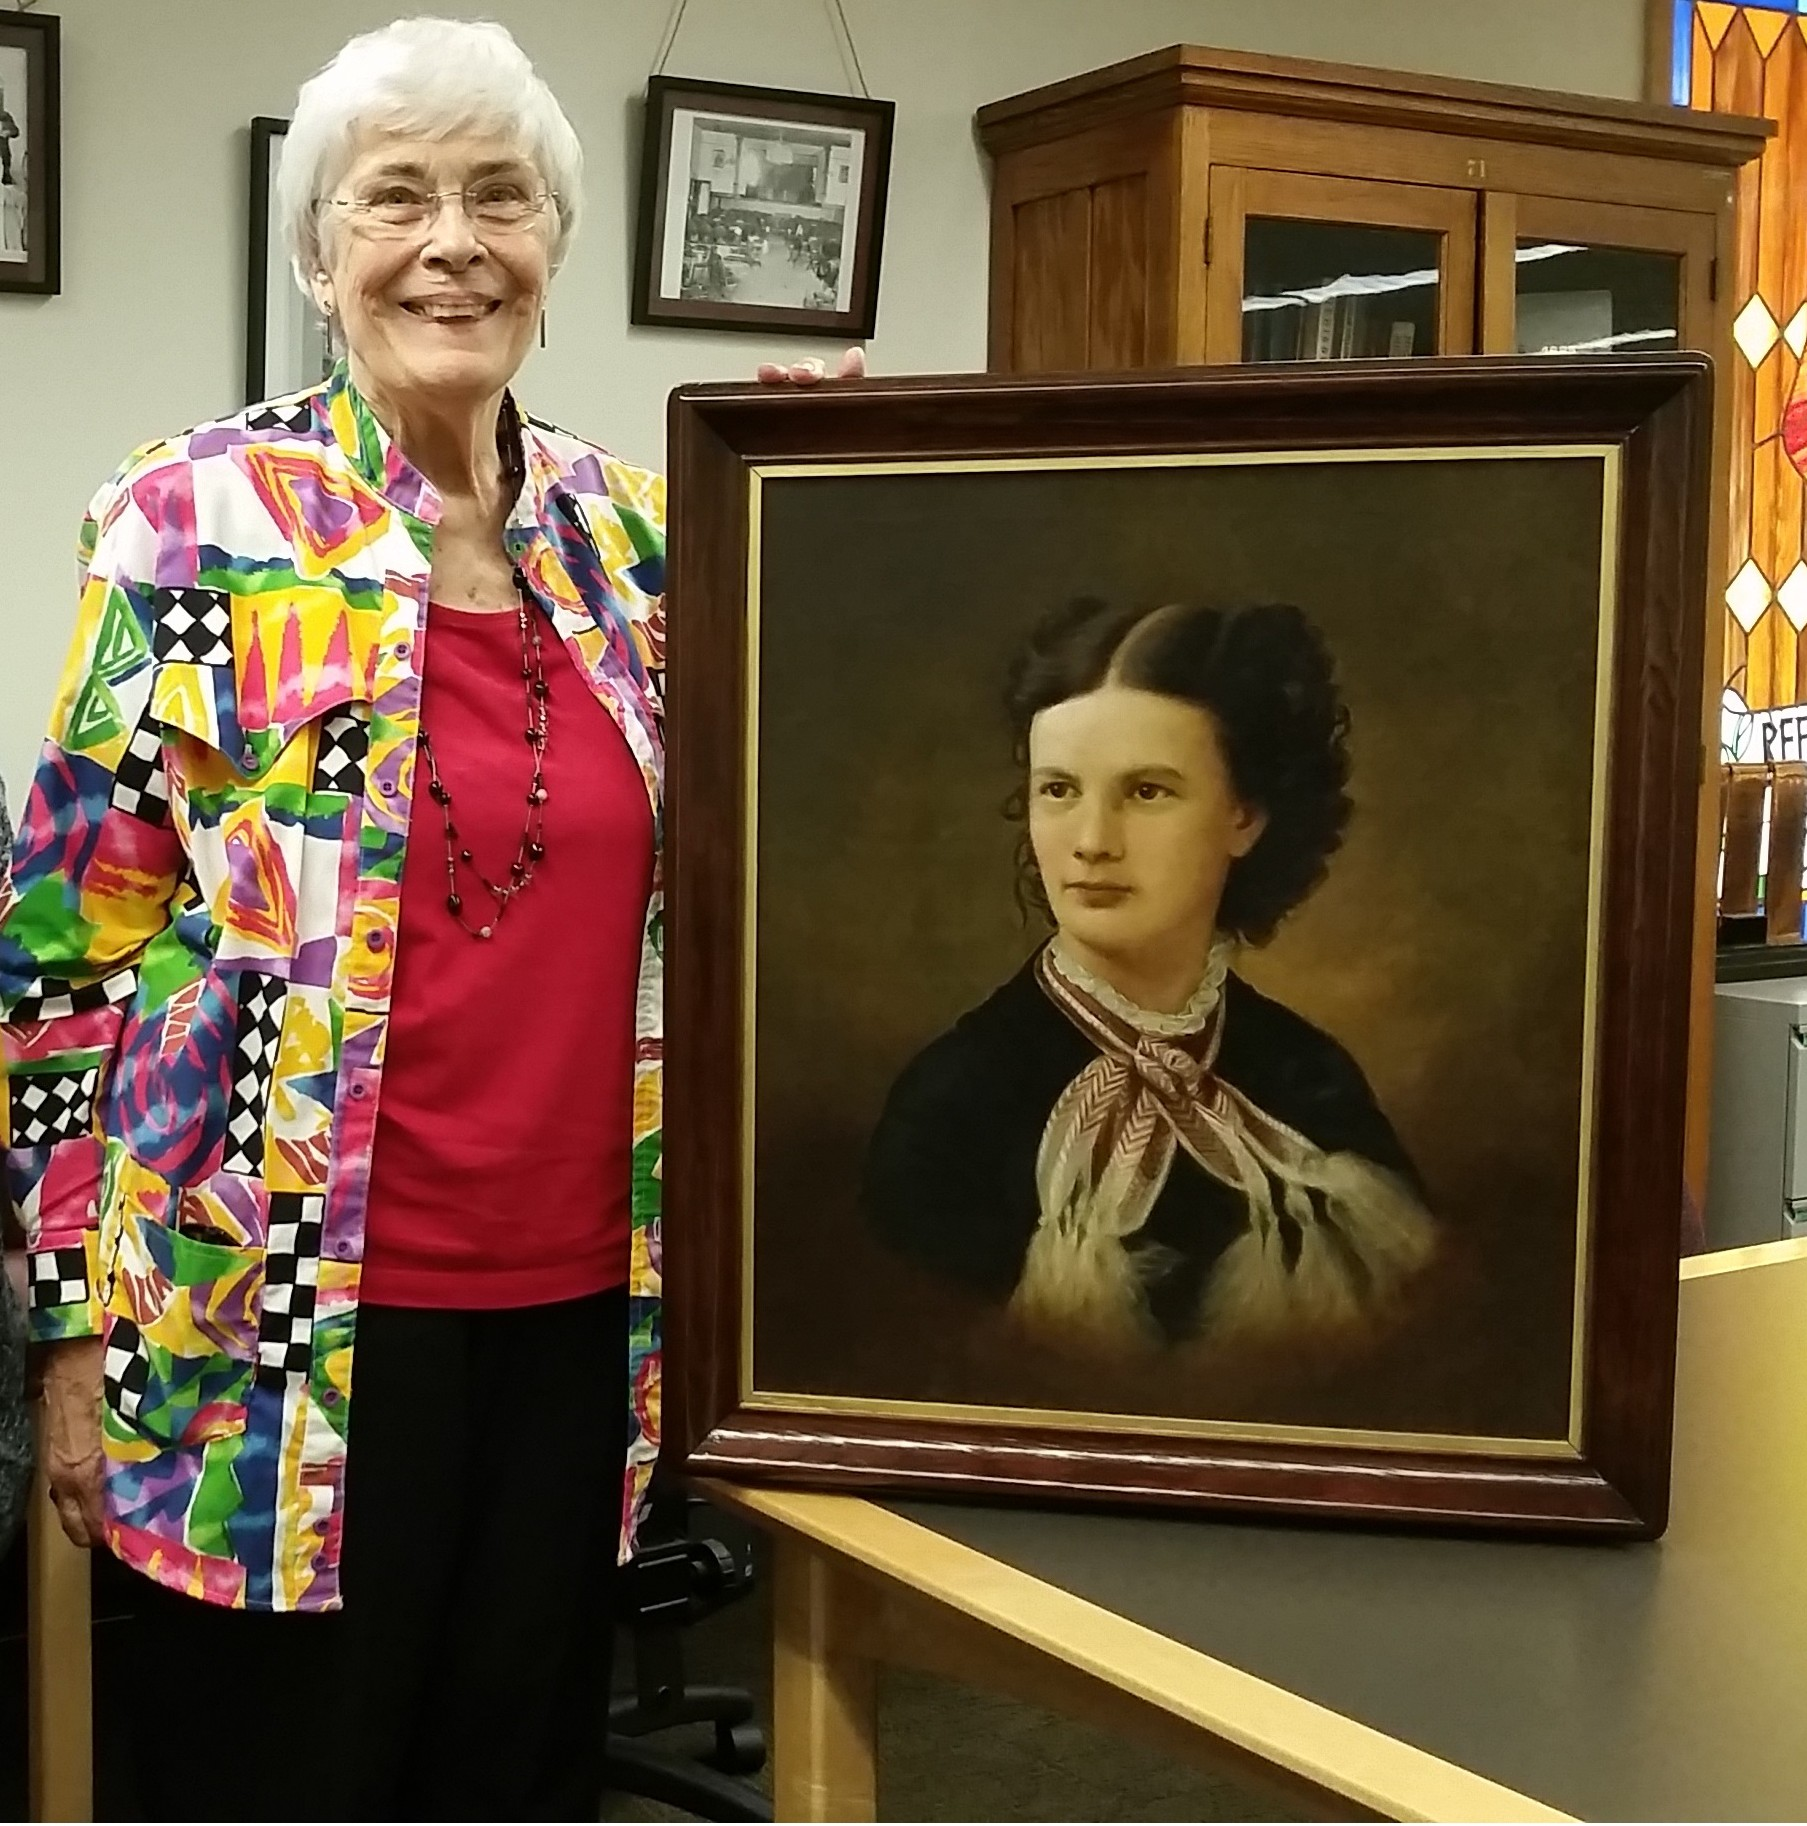 Donor Jane Libby and Archivist Lindsay Hiltunen pose with the framed portrait of Christeen M. Shelden, daughter of local historic figure Ransom B. Shelden. The painting was donated to the Michigan Technological University Archives and Copper Country Historical Collections on Monday, June 20.